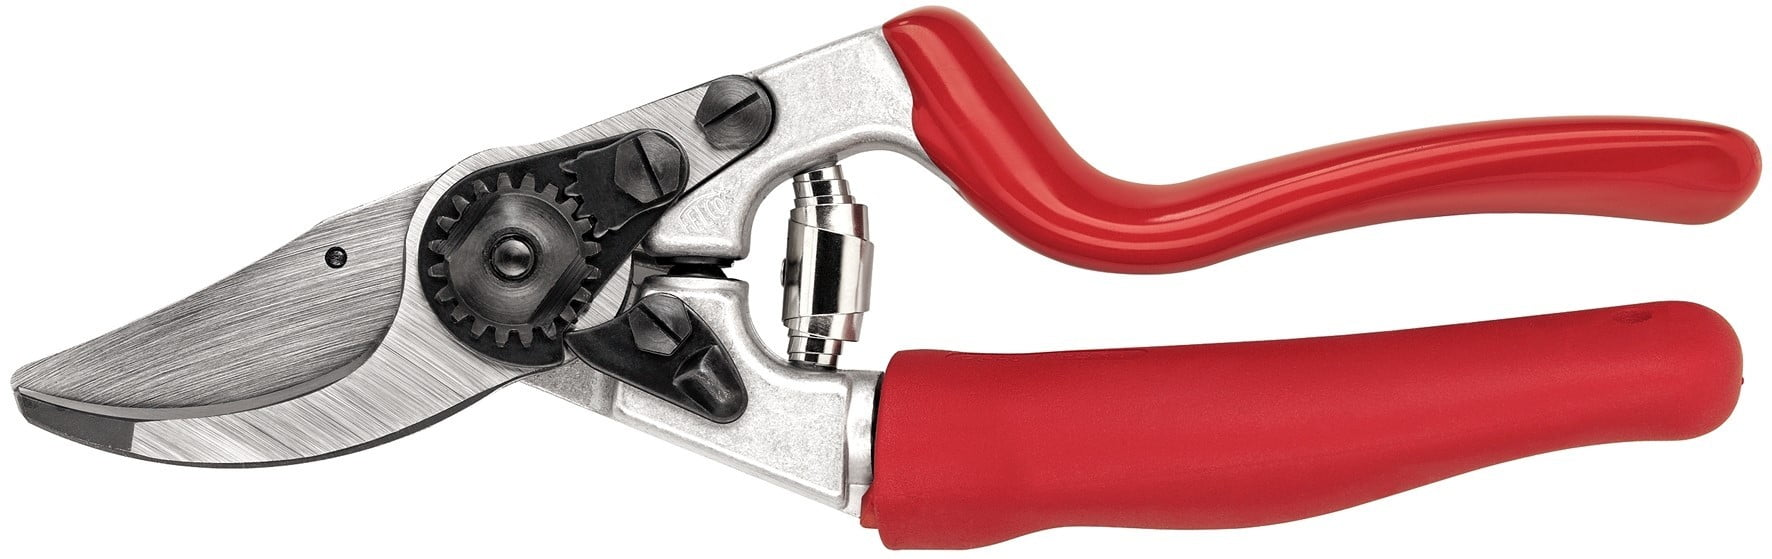 Felco F 7 Bypass Secateurs